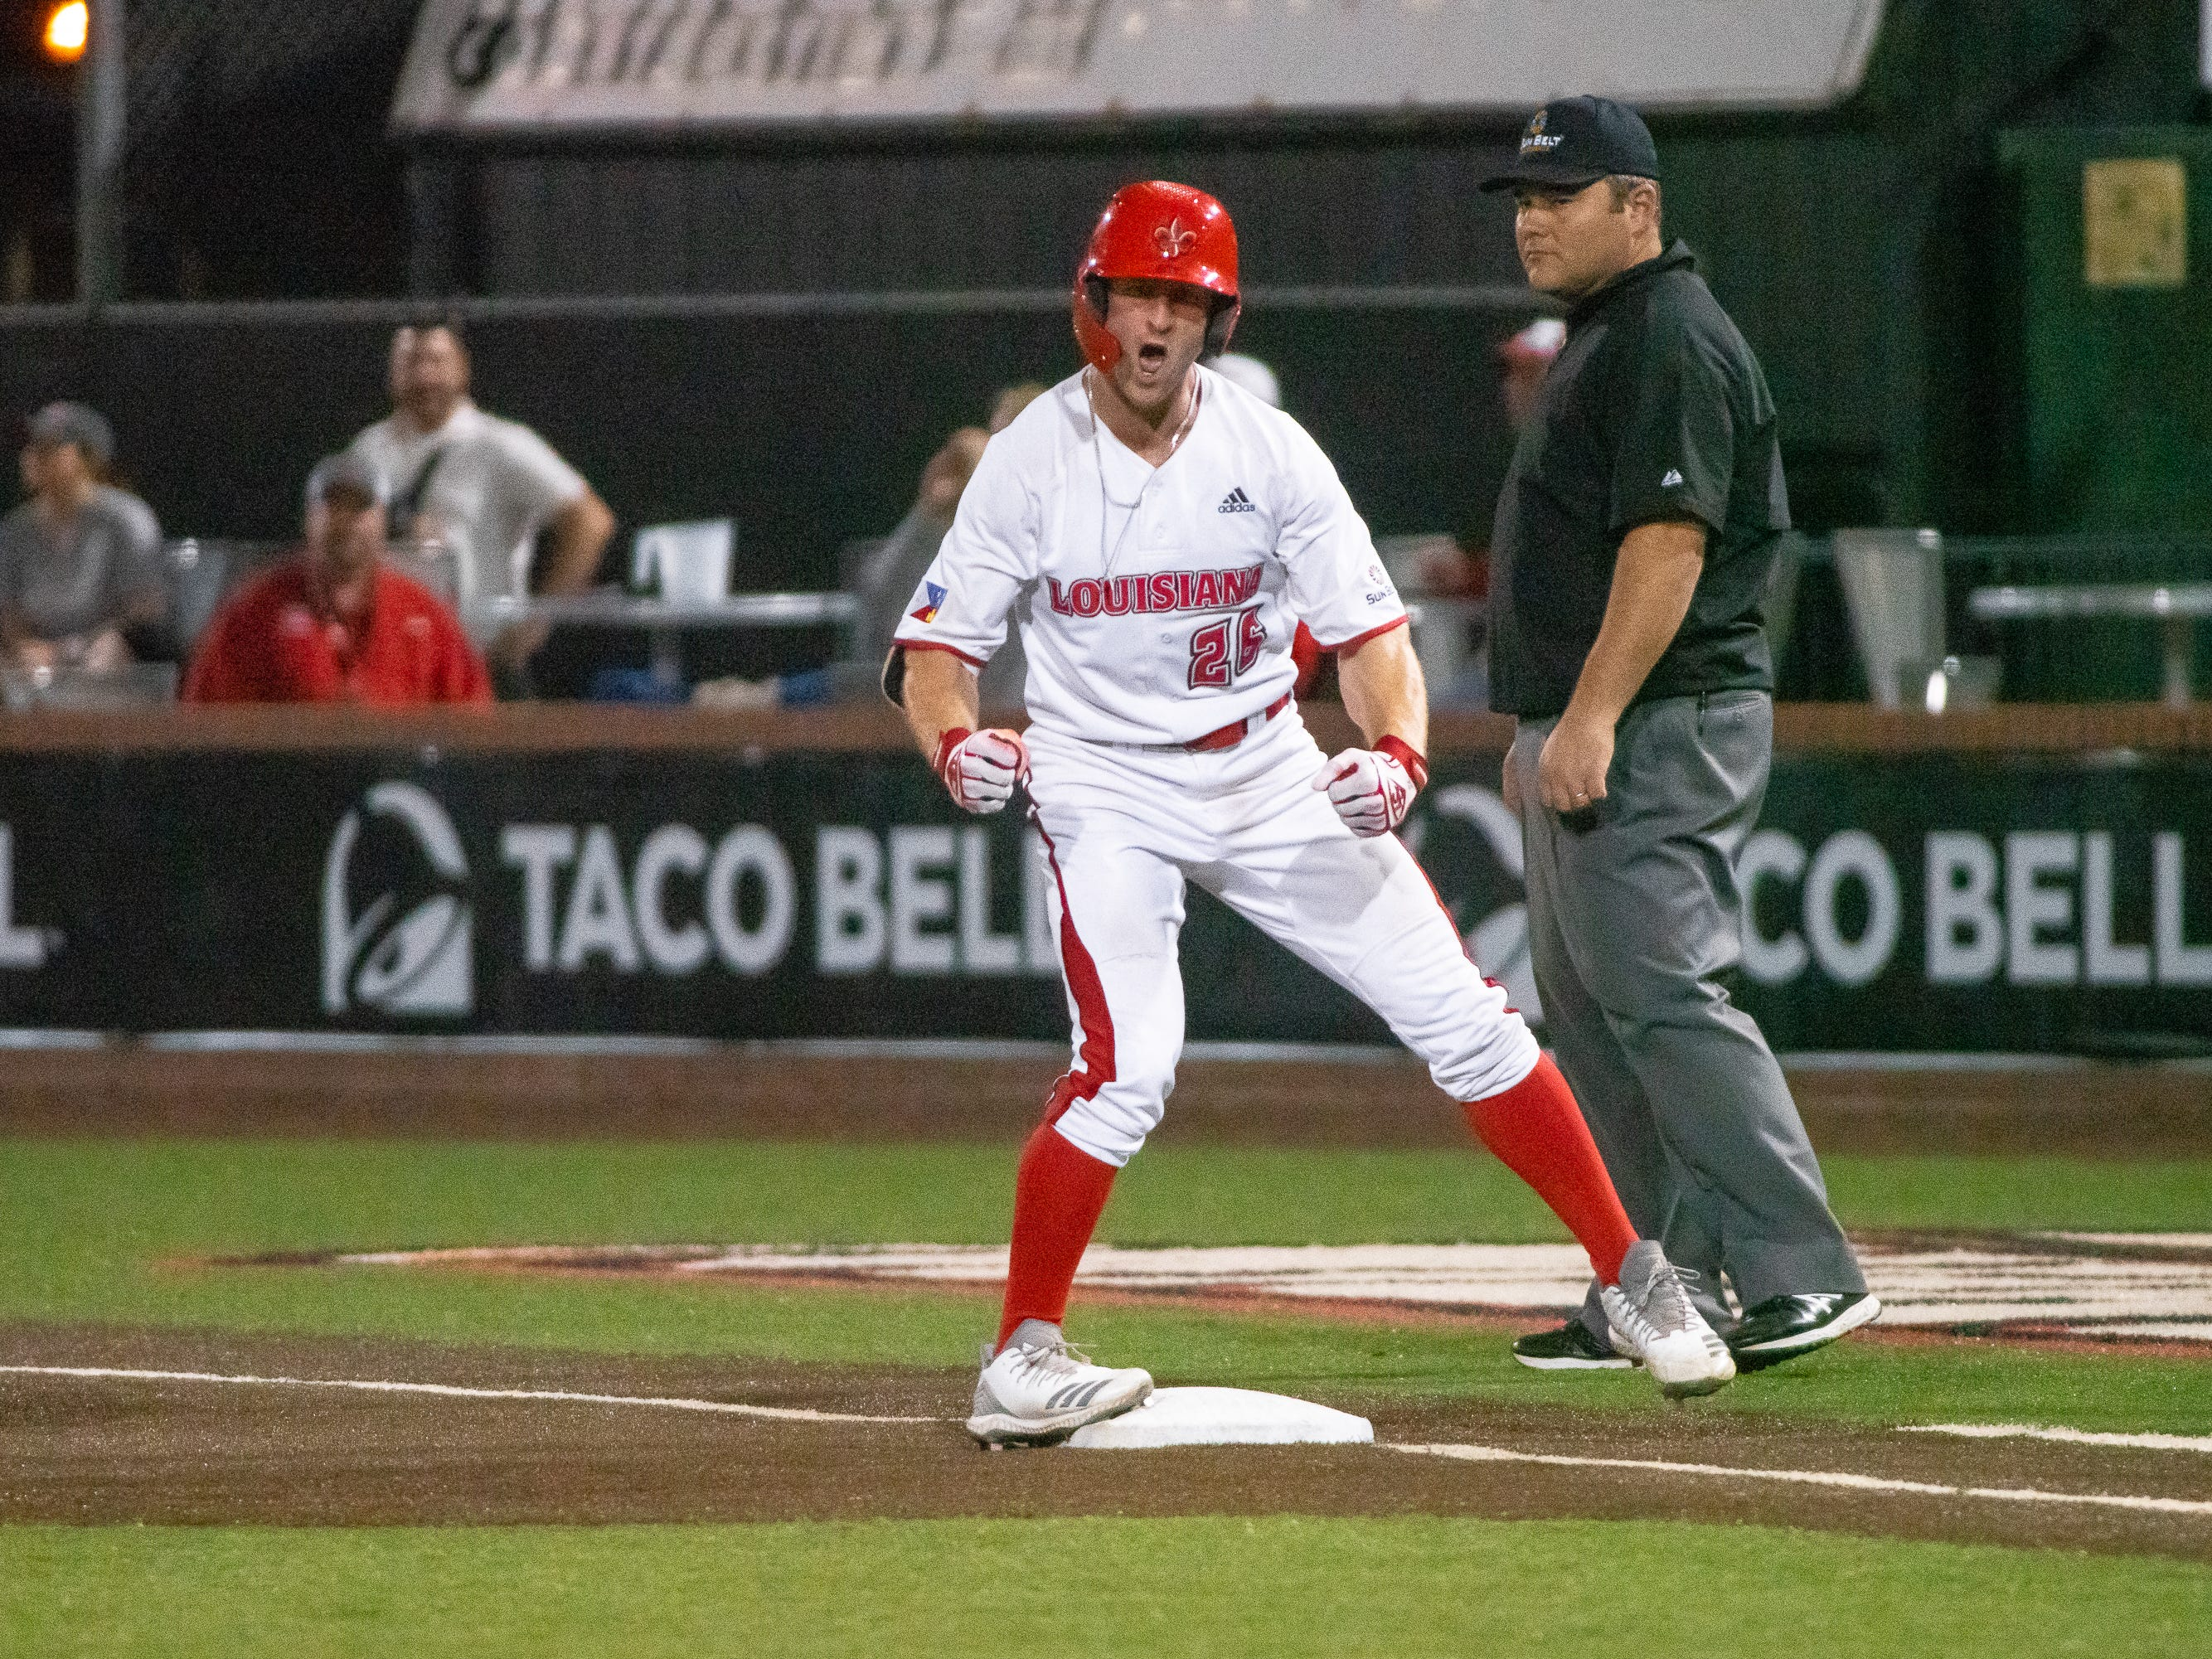 """UL's Daniel Lahare celebrates his hit on first base as the Ragin' Cajuns take on the Southern Miss Golden Eagles at M.L. """"Tigue"""" Moore Field on Wednesday, March 13, 2019."""